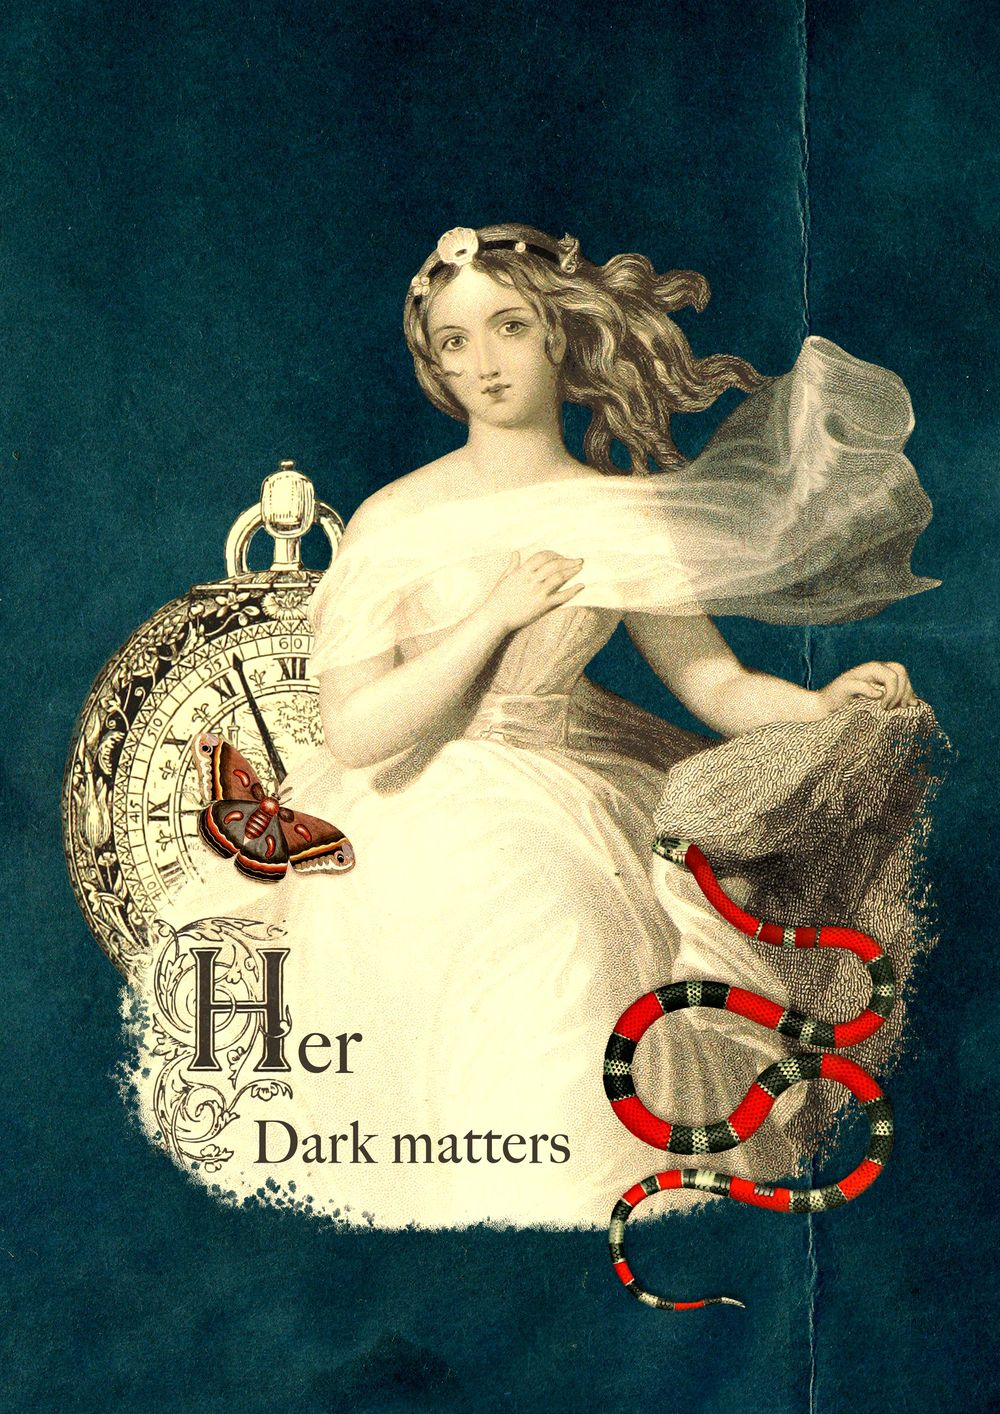 Her Dark Matters - image 1 - student project